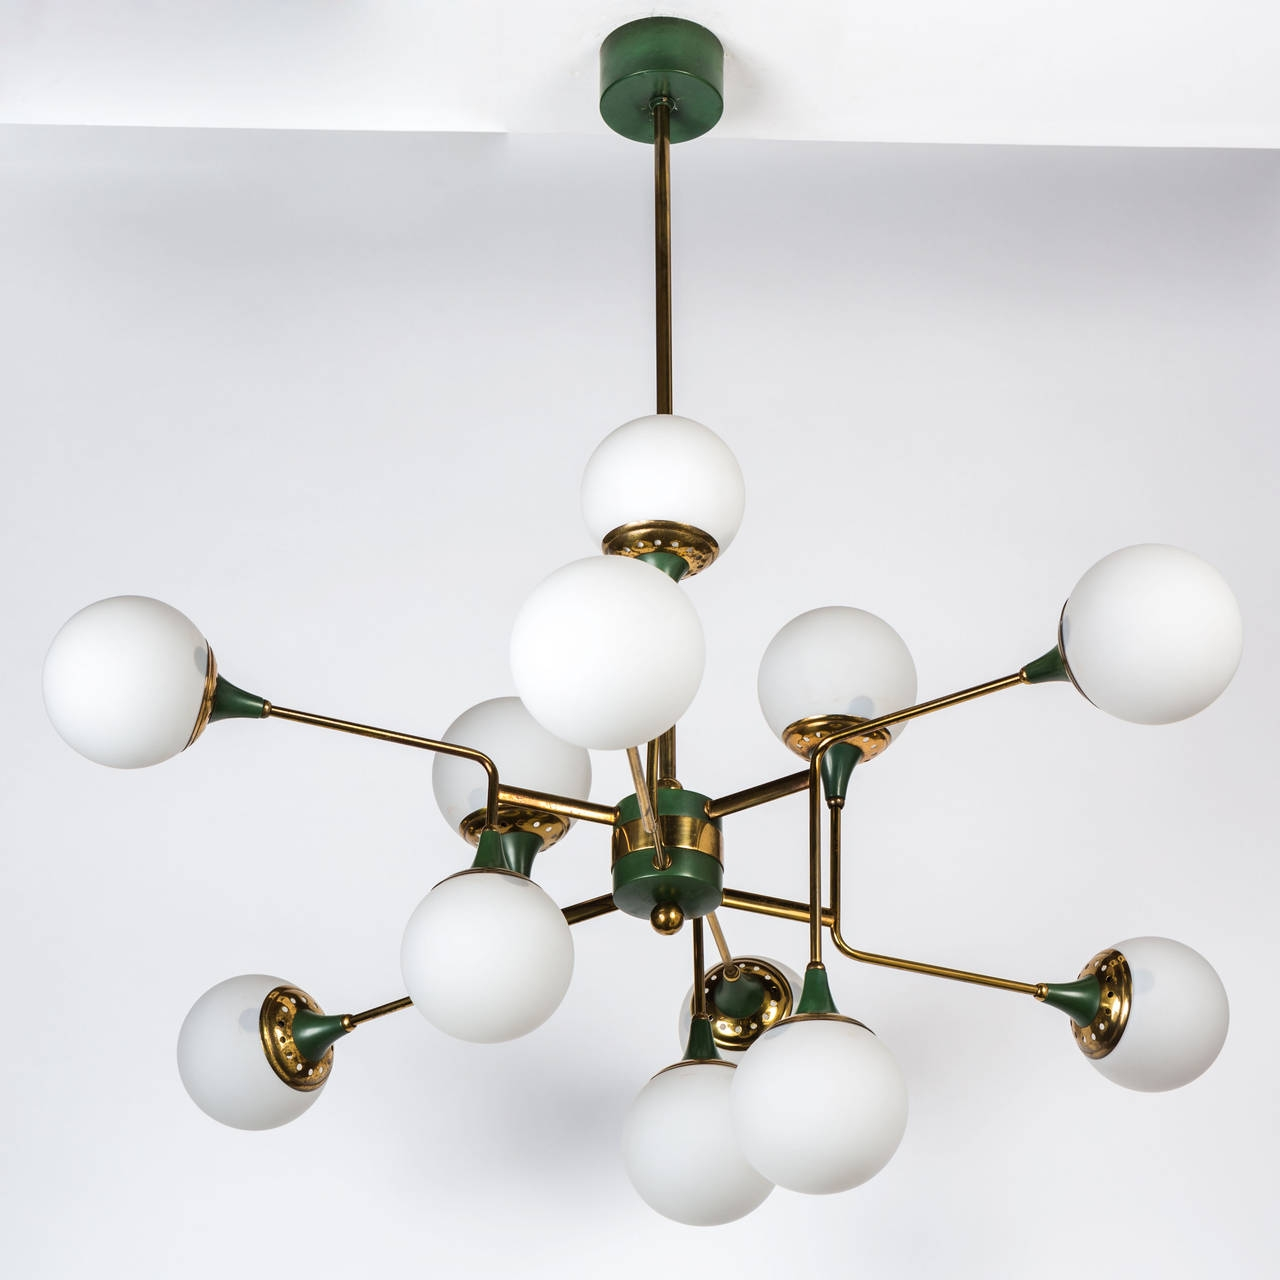 Stilnovo 12 Globe Chandelier Modern Chandelier Antiques And Intended For Globe Chandeliers (Image 14 of 15)